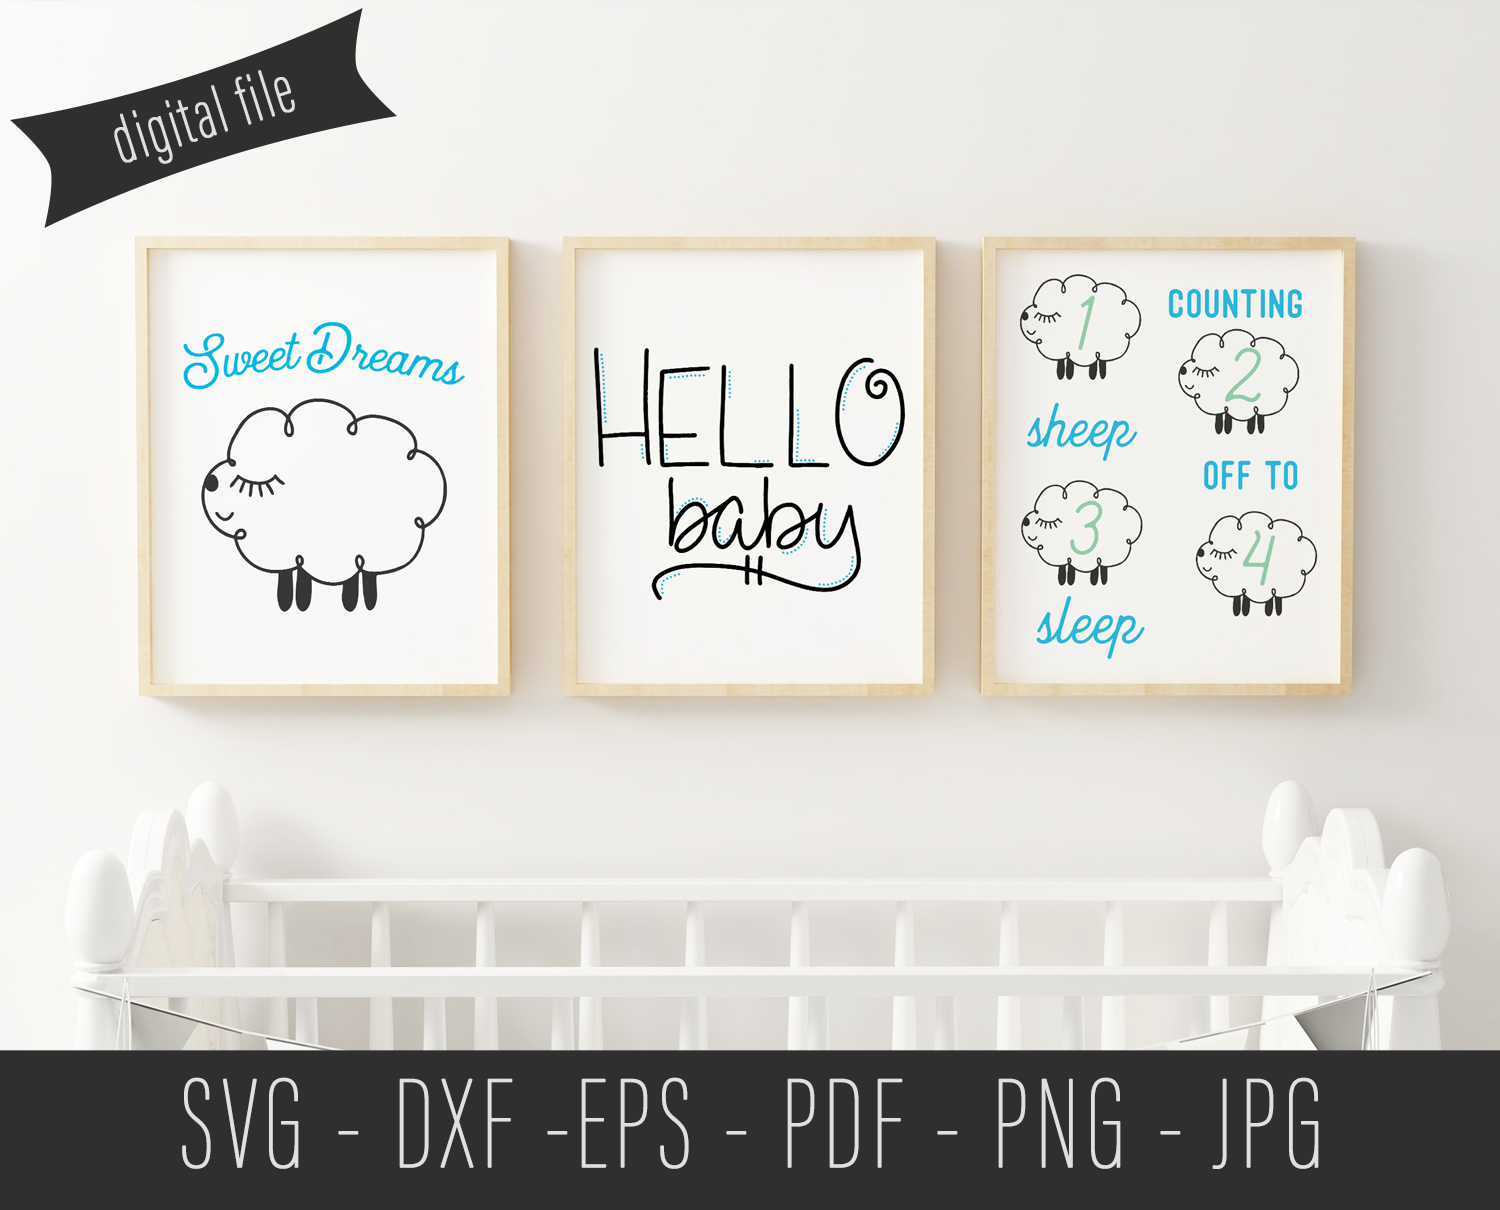 Counting Sheep Nursery Print - SVG Cut File example image 2